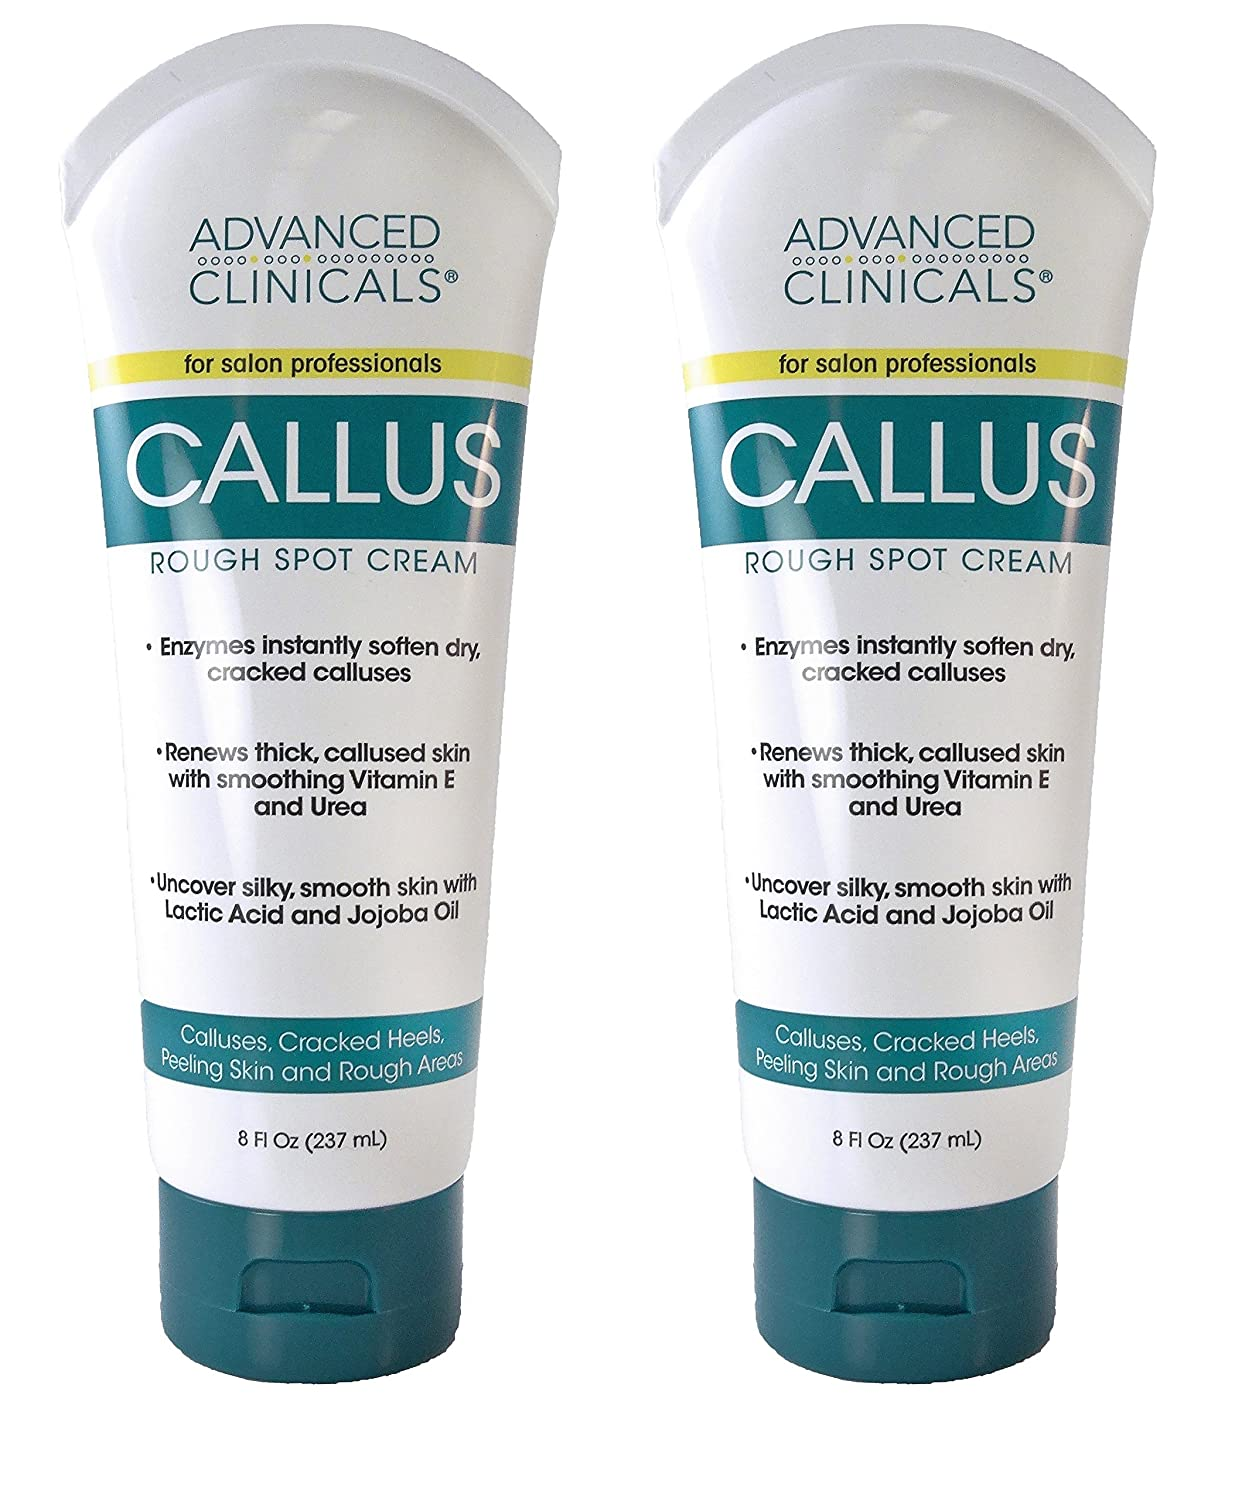 Advanced Clinicals Callus Cream. Best Foot Cream for callus and rough spots. For Rough Dry Skin on Feet, Hands, Elbows. (8oz): Health & Personal Care